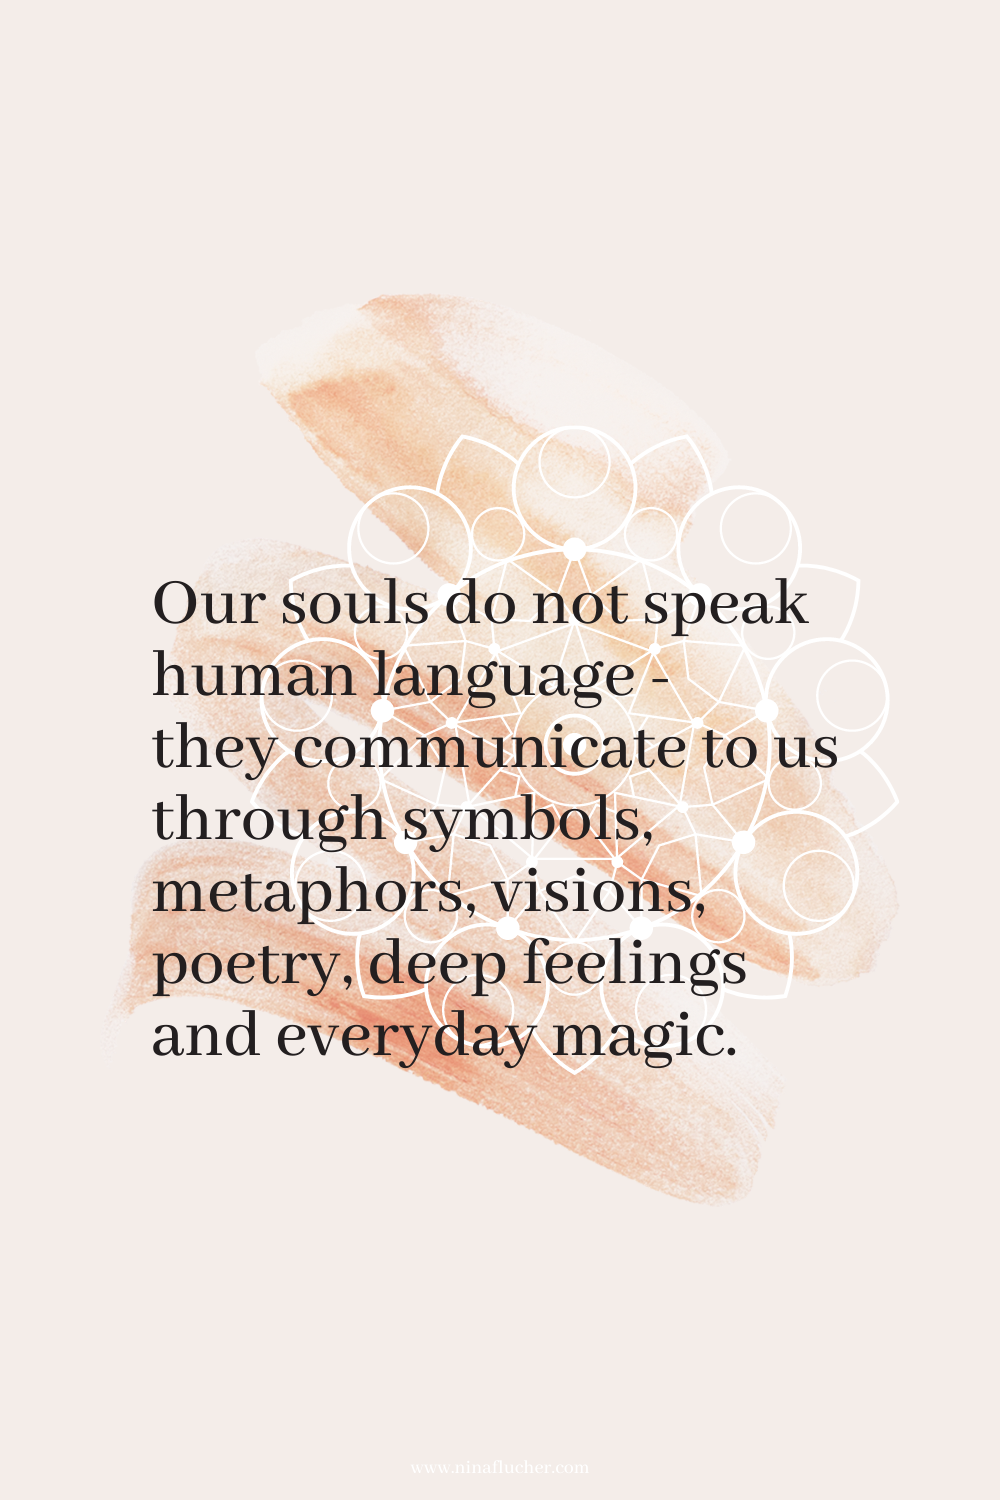 Zitate Februar 2021  - Our souls do not speak human language - they communicate to us through symbols, metaphors, visions, poetry, deep feelings and everyday magic.